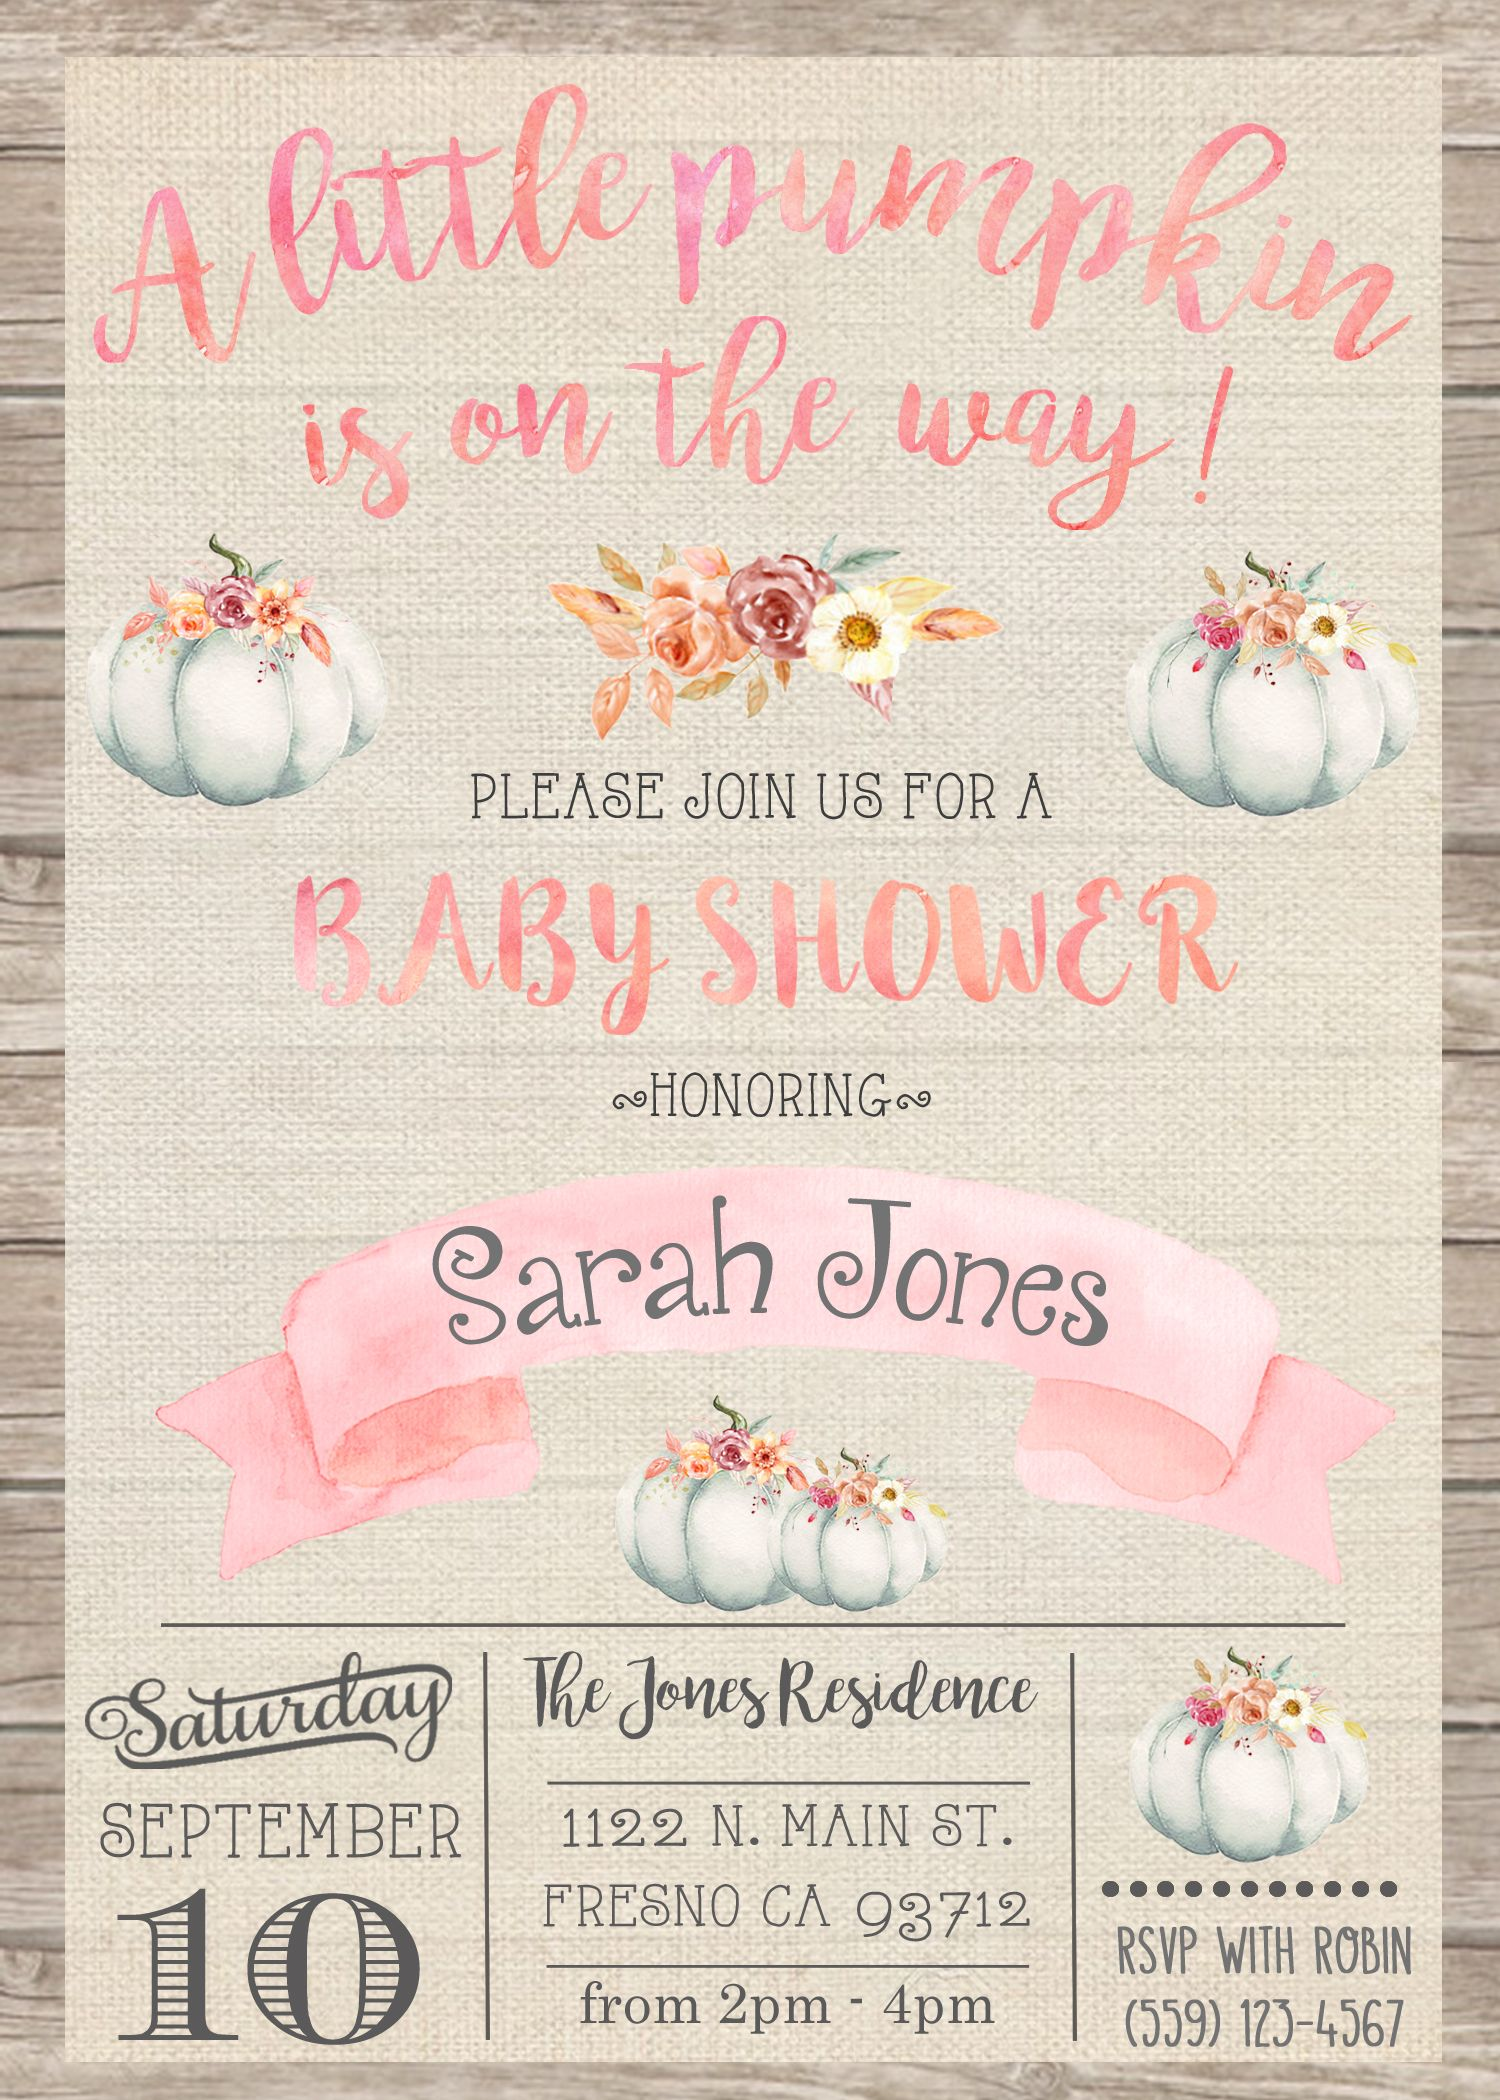 Full Size of Baby Shower:63+ Delightful Cheap Baby Shower Invitations Image Inspirations Cheap Baby Shower Invitations Little Pumpkin Baby Shower Invitation Invite Rustic Shabby Chic Pink Little Pumpkin Baby Shower Invitation Invite Rustic Shabby Chic Pink Peach Watercolor Our Little Pumpkin A Little Pumpkin Fall Autumn Wood Burlap Flowers